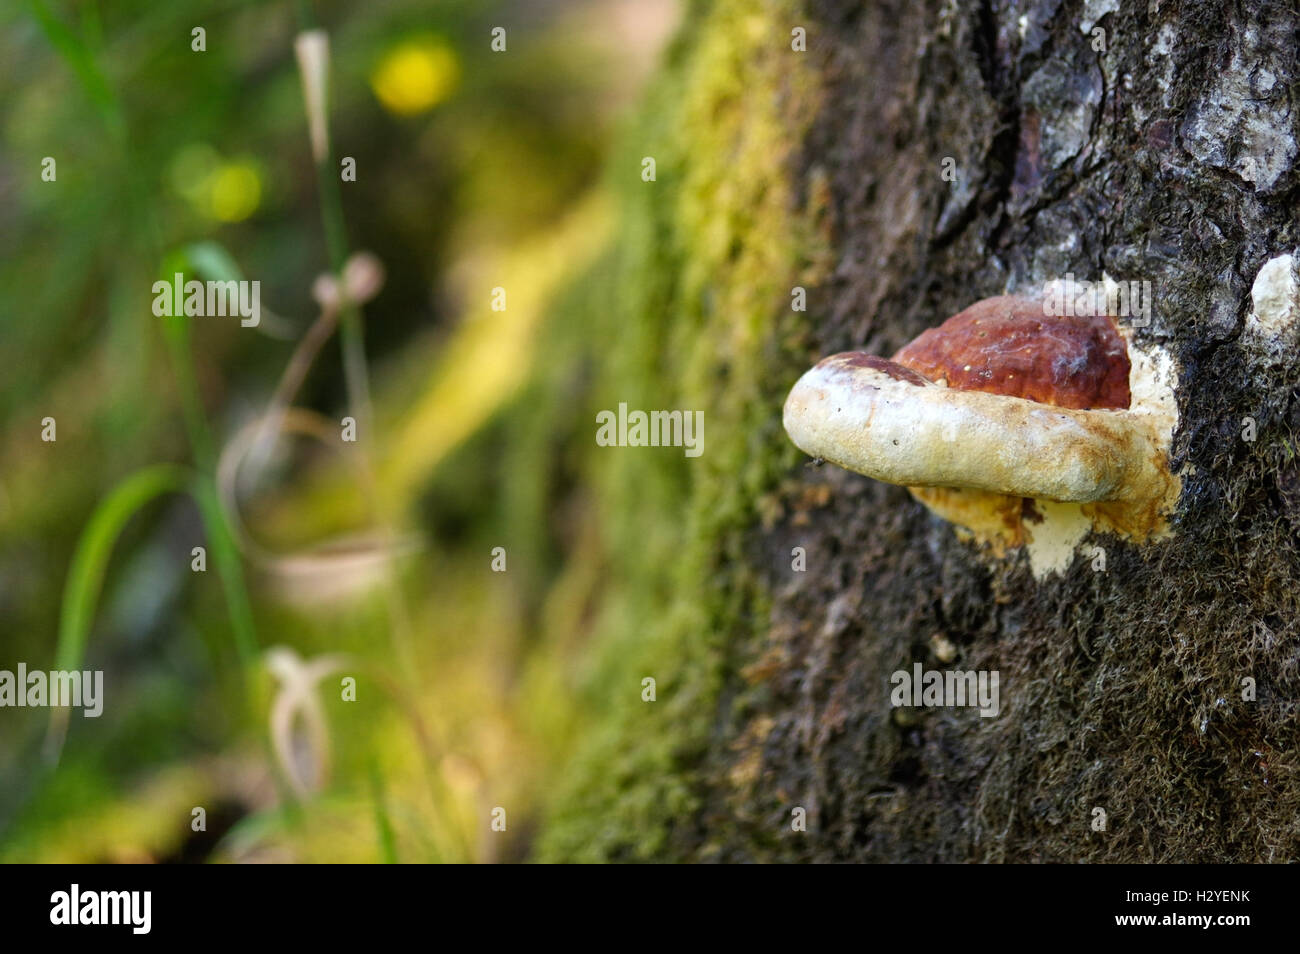 a large fungus growing on the side of a old tree. - Stock Image